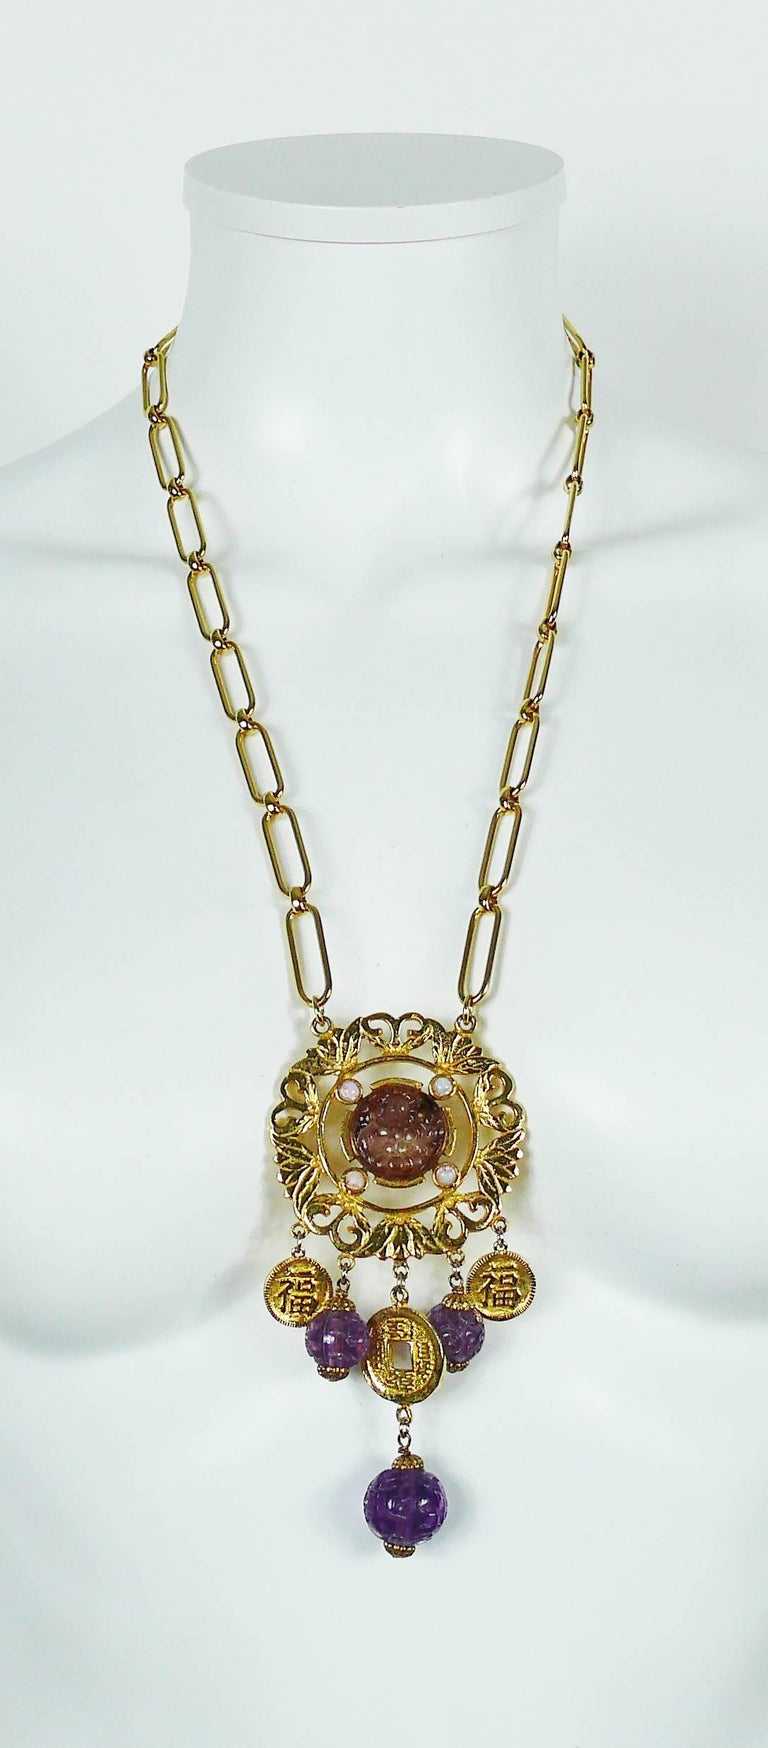 CADORO vintage gold toned necklace featuring a Chinese inspired openwork disc pendant with purple resin ornaments, faux moonstones and coin charms.  Marked CADORO.  Spring clasp closure.  Indicative measurements : chain length approx. 63 cm (24.80